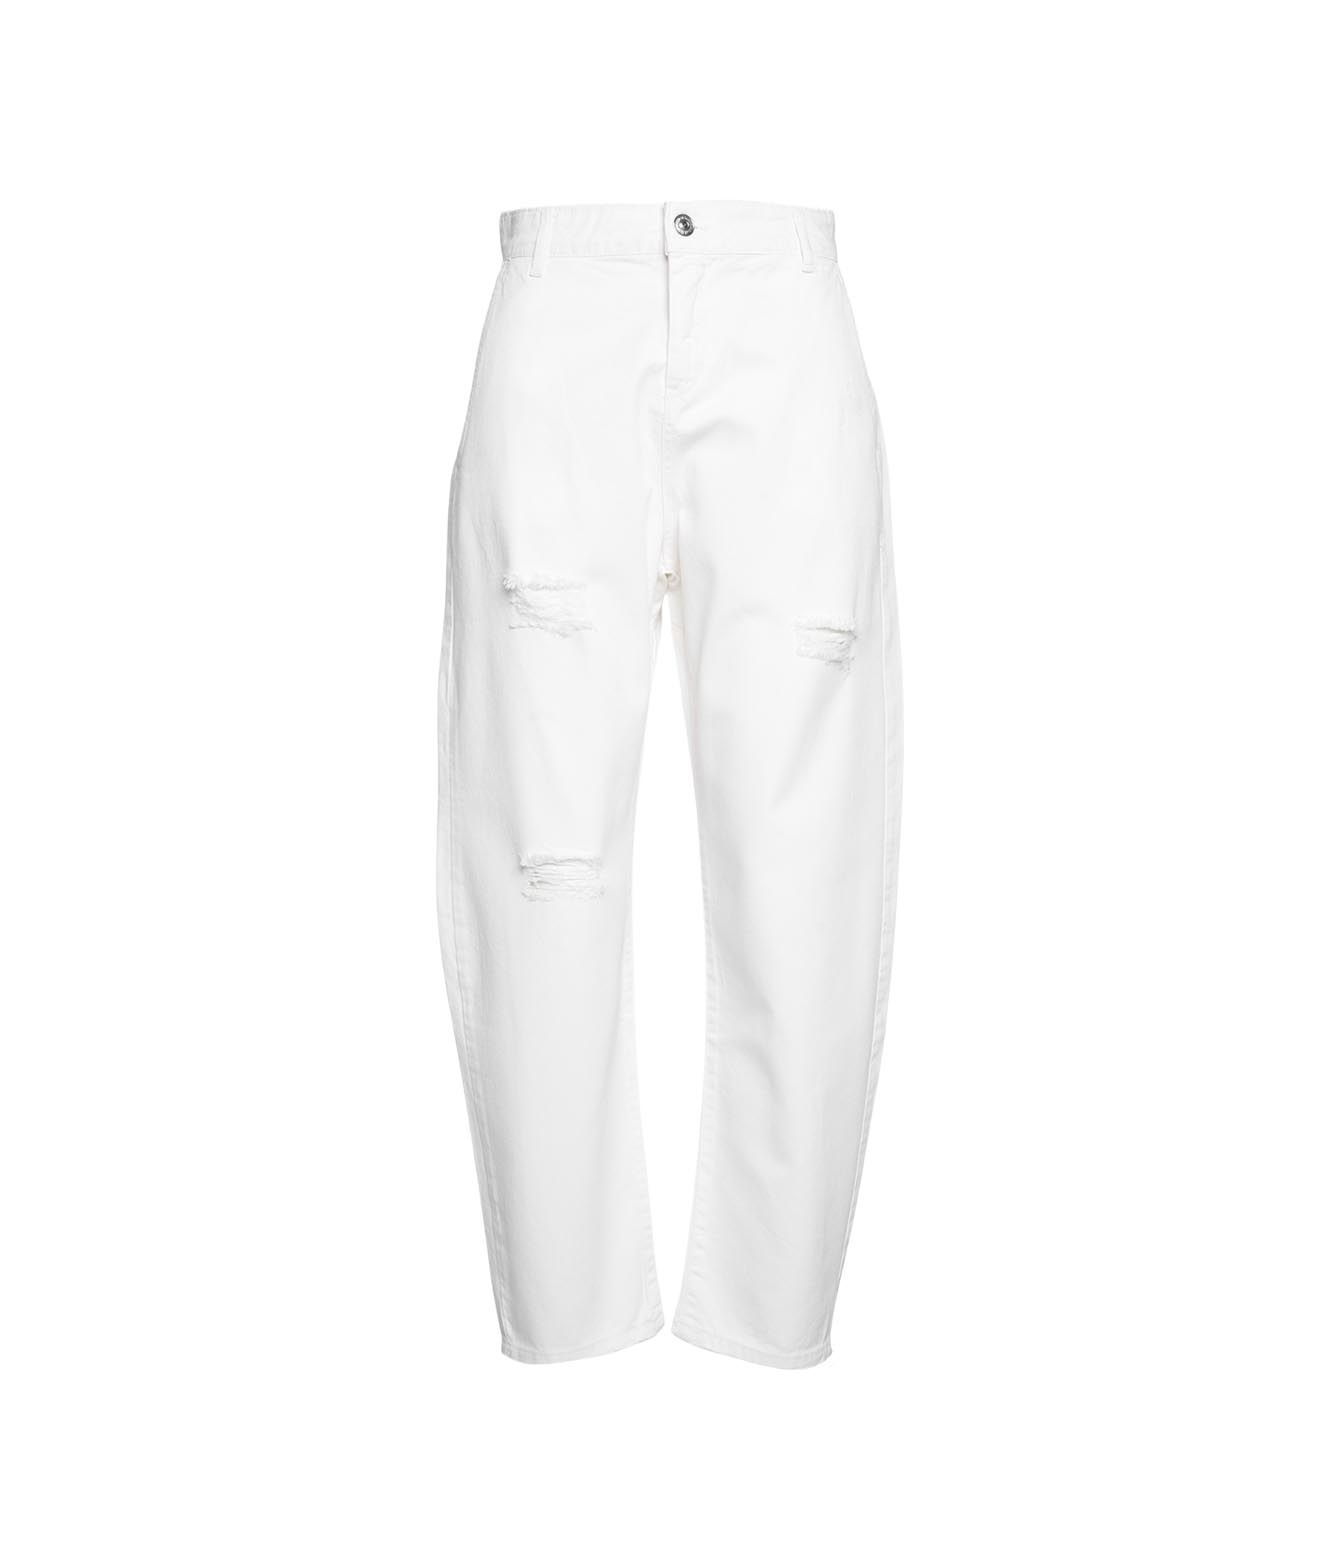 Aniye By ANIYE BY WOMEN'S 1856451100001 WHITE OTHER MATERIALS JEANS